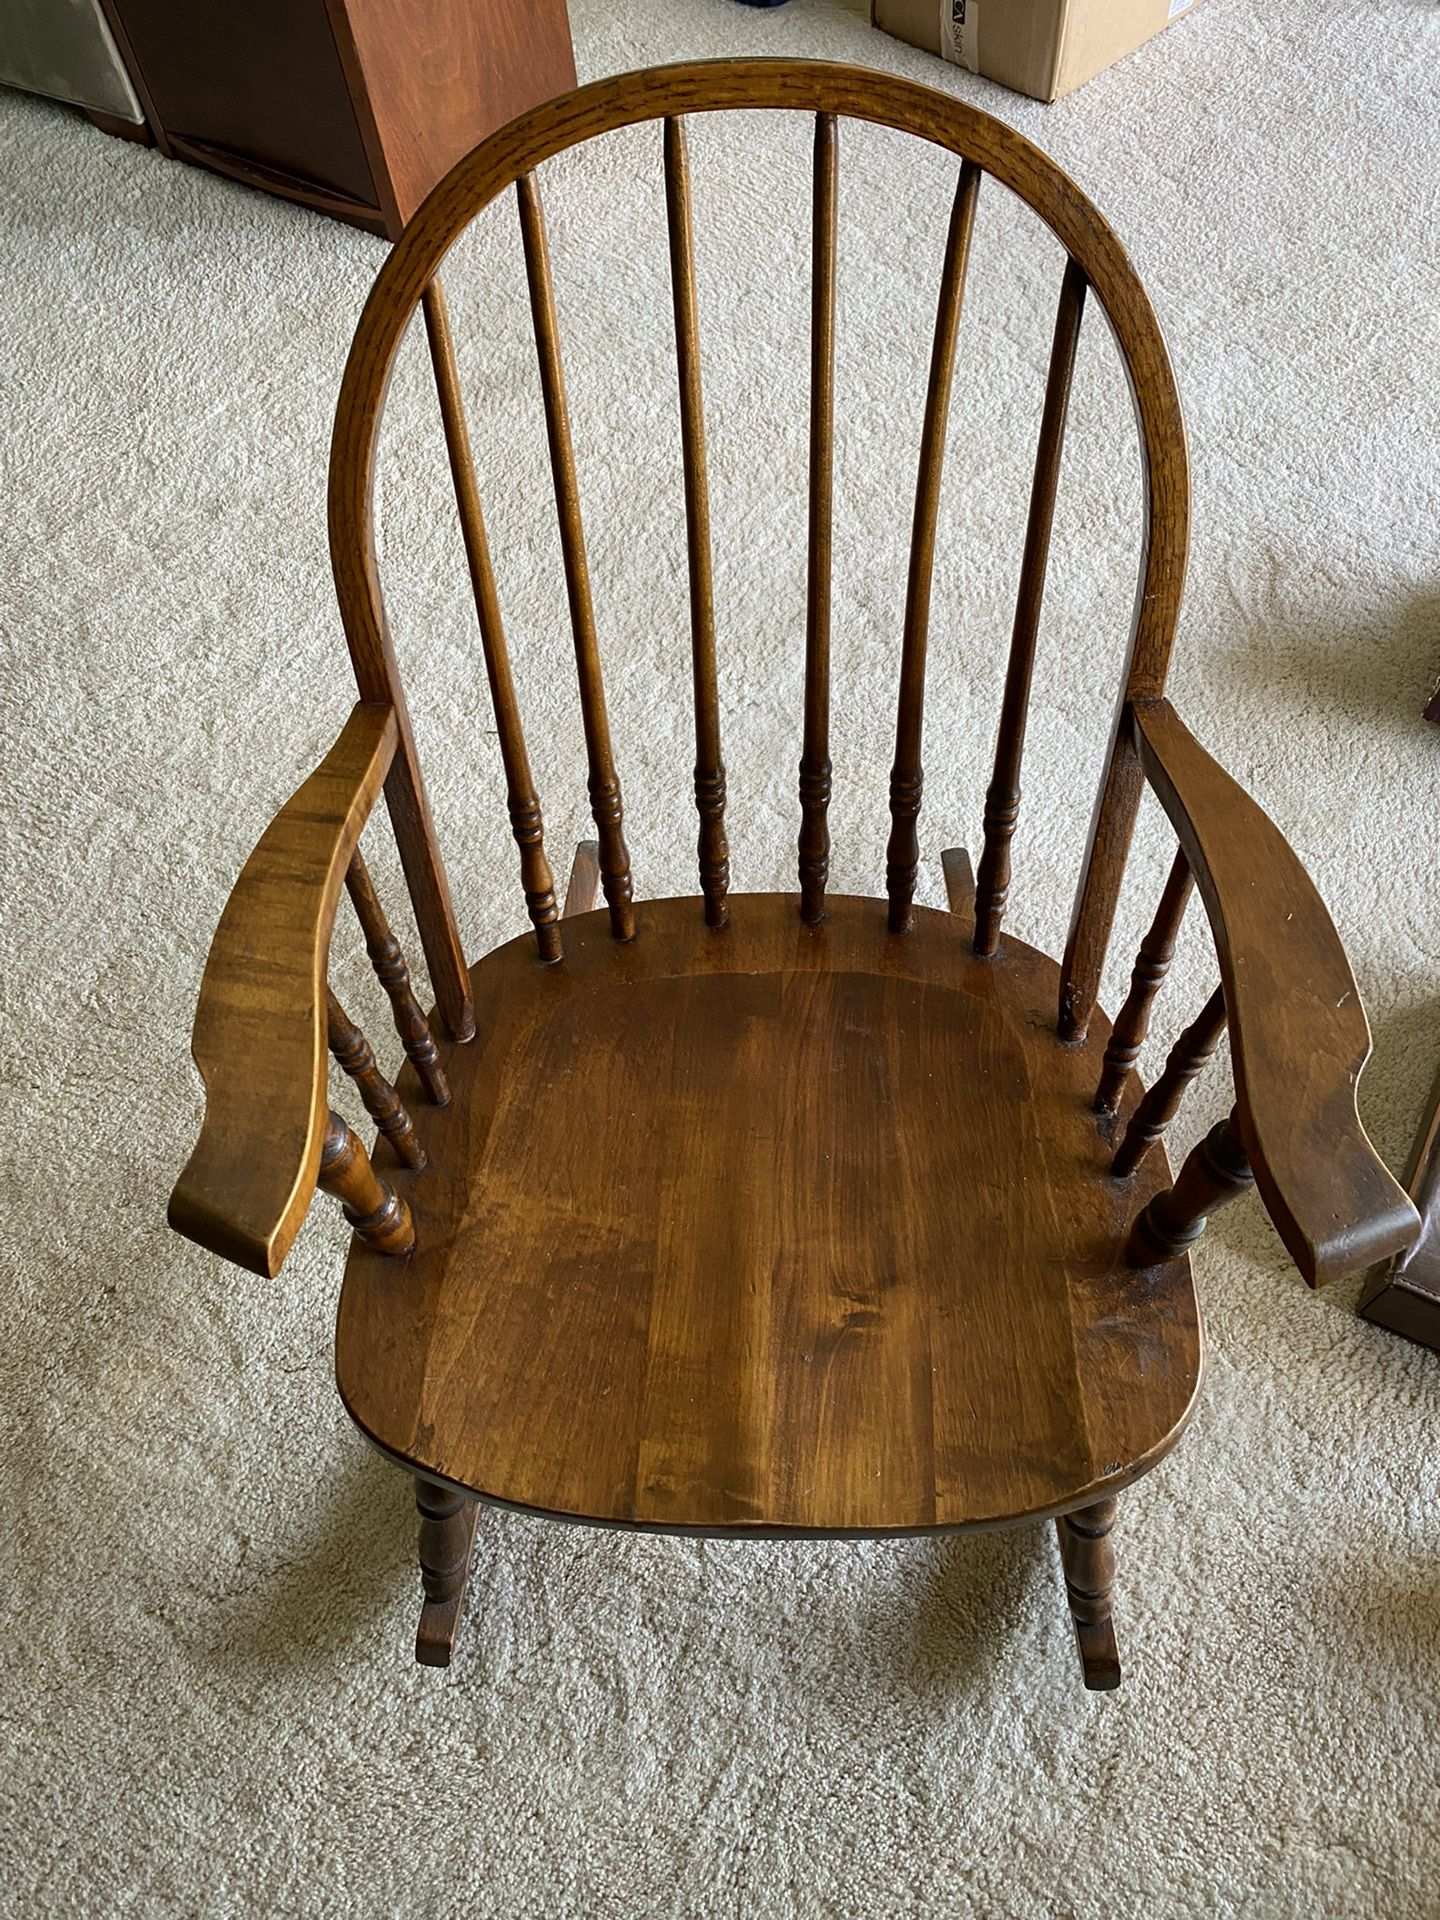 Wood Rocking Chair w/ Rounded Back